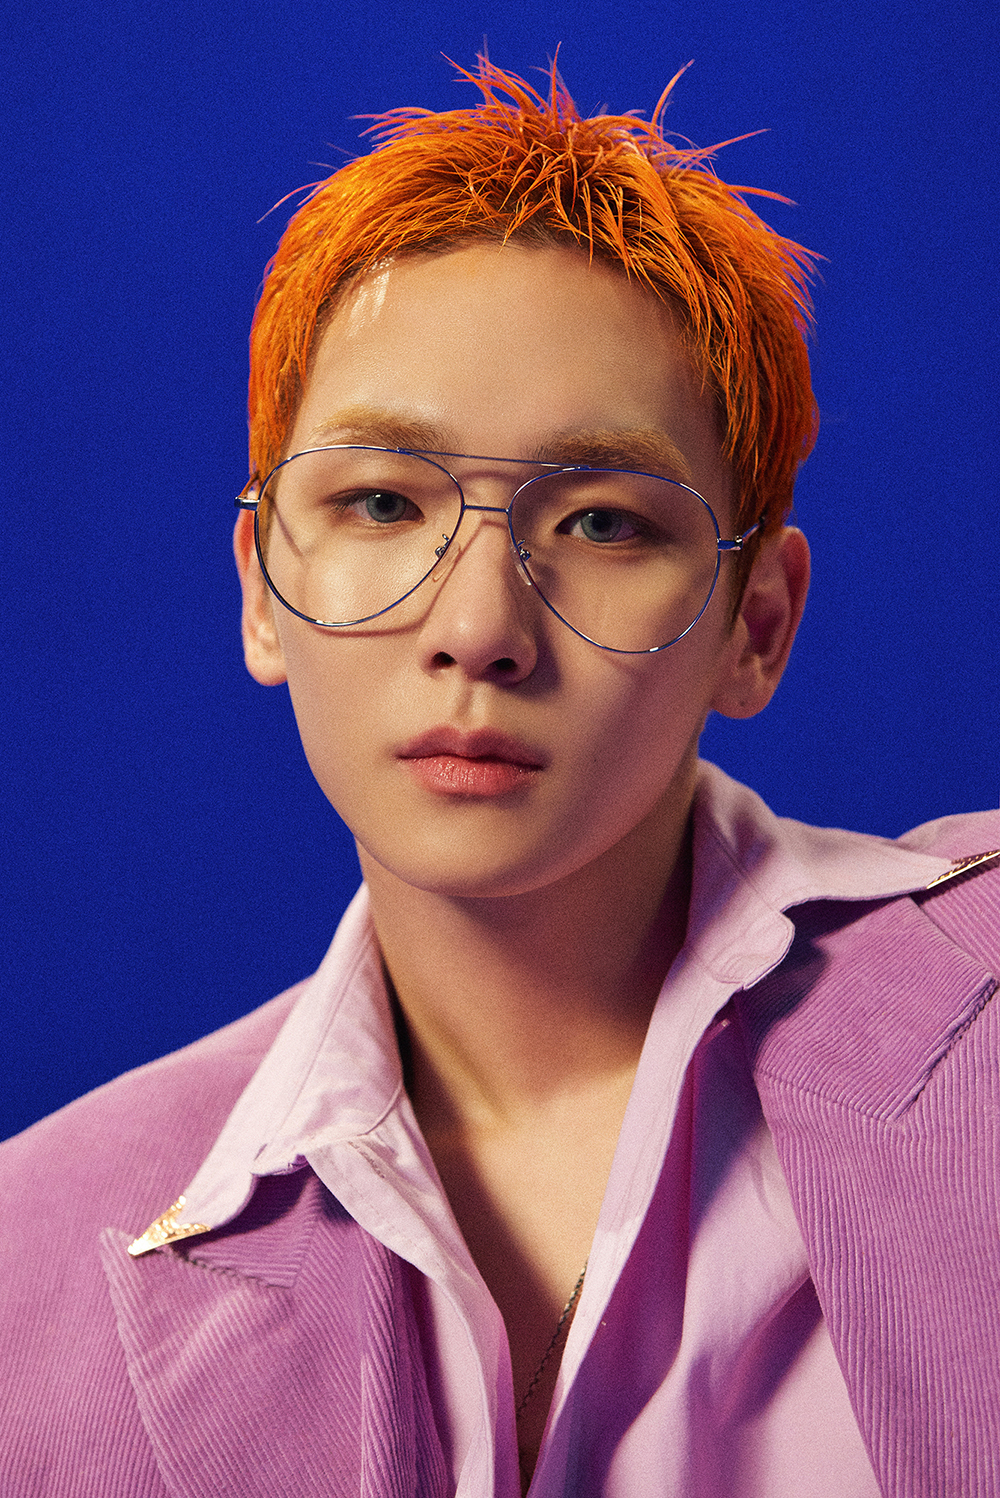 SHINee KEY solo出道曲《Forever Yours》预告视频今日公开